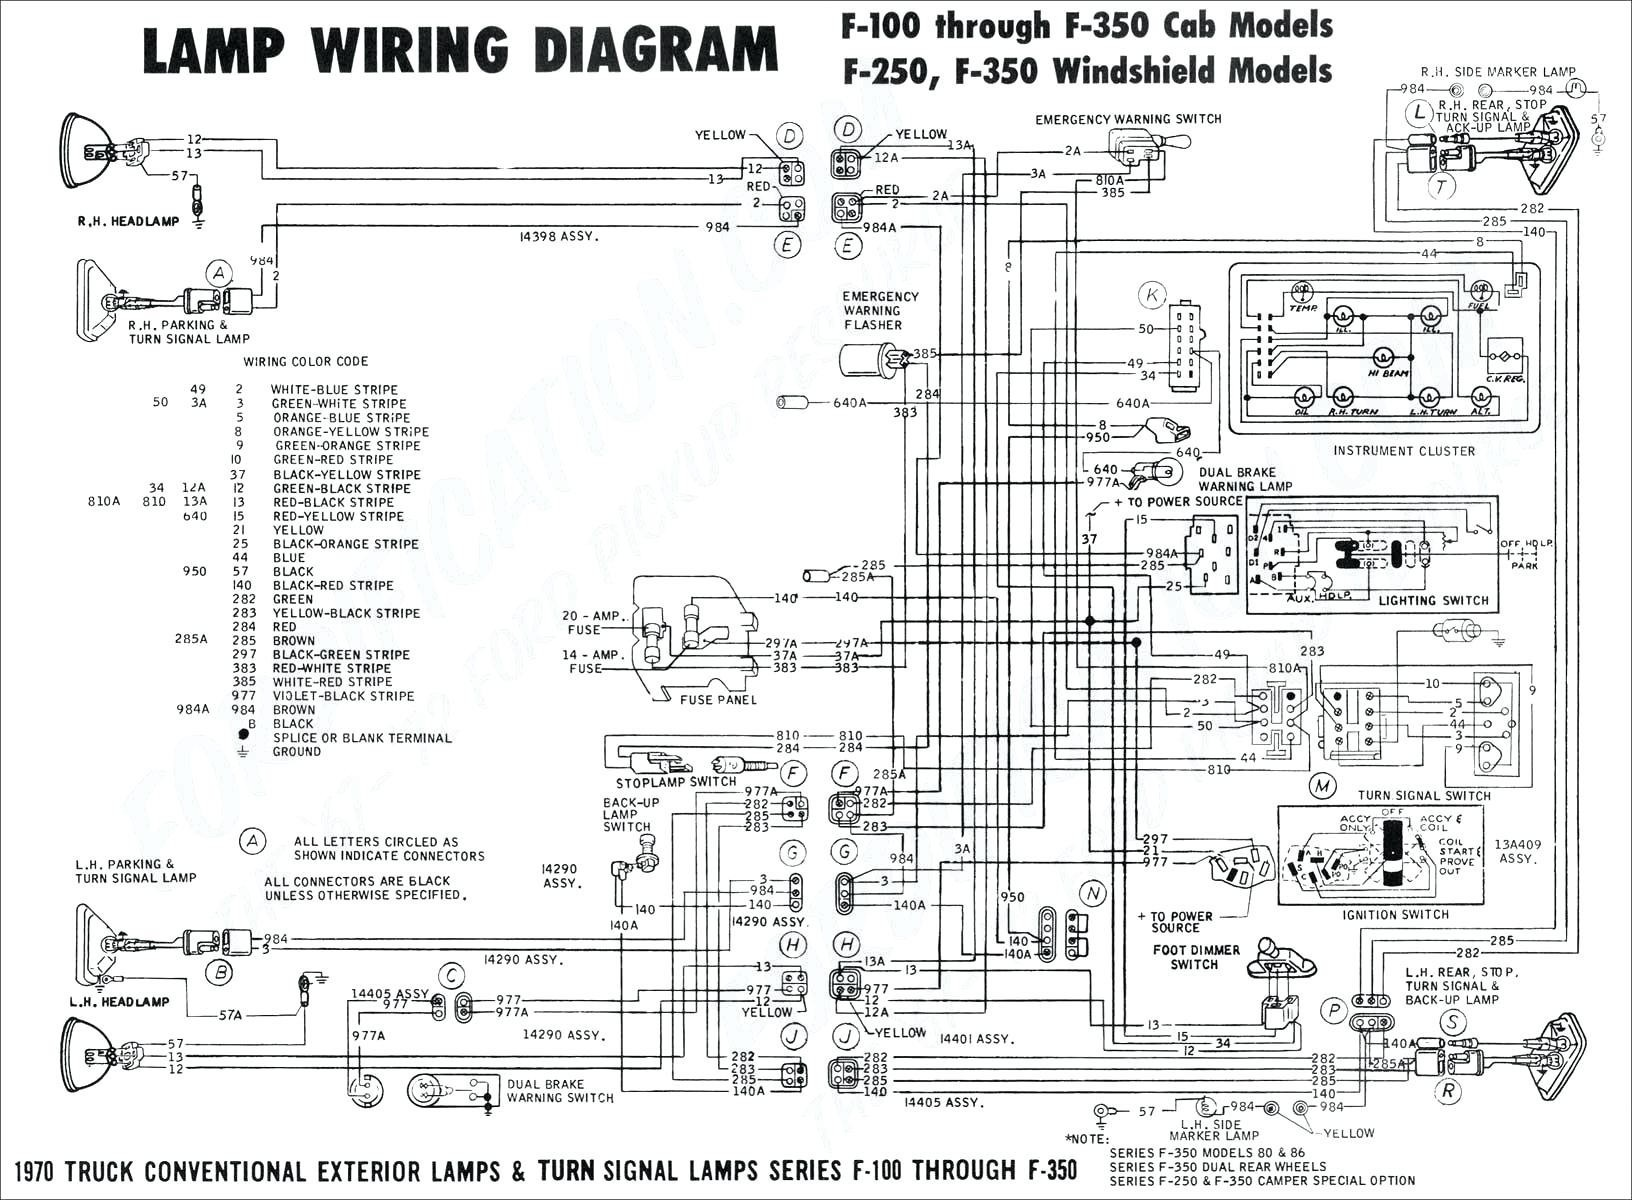 Ford F150 Tail Light Wiring Diagram Wiring Diagram for Automotive Lights New Stop Turn Tail Light Wiring Of Ford F150 Tail Light Wiring Diagram 1995 Chevy Truck Tail Light Wiring Diagram Trusted Wiring Diagram